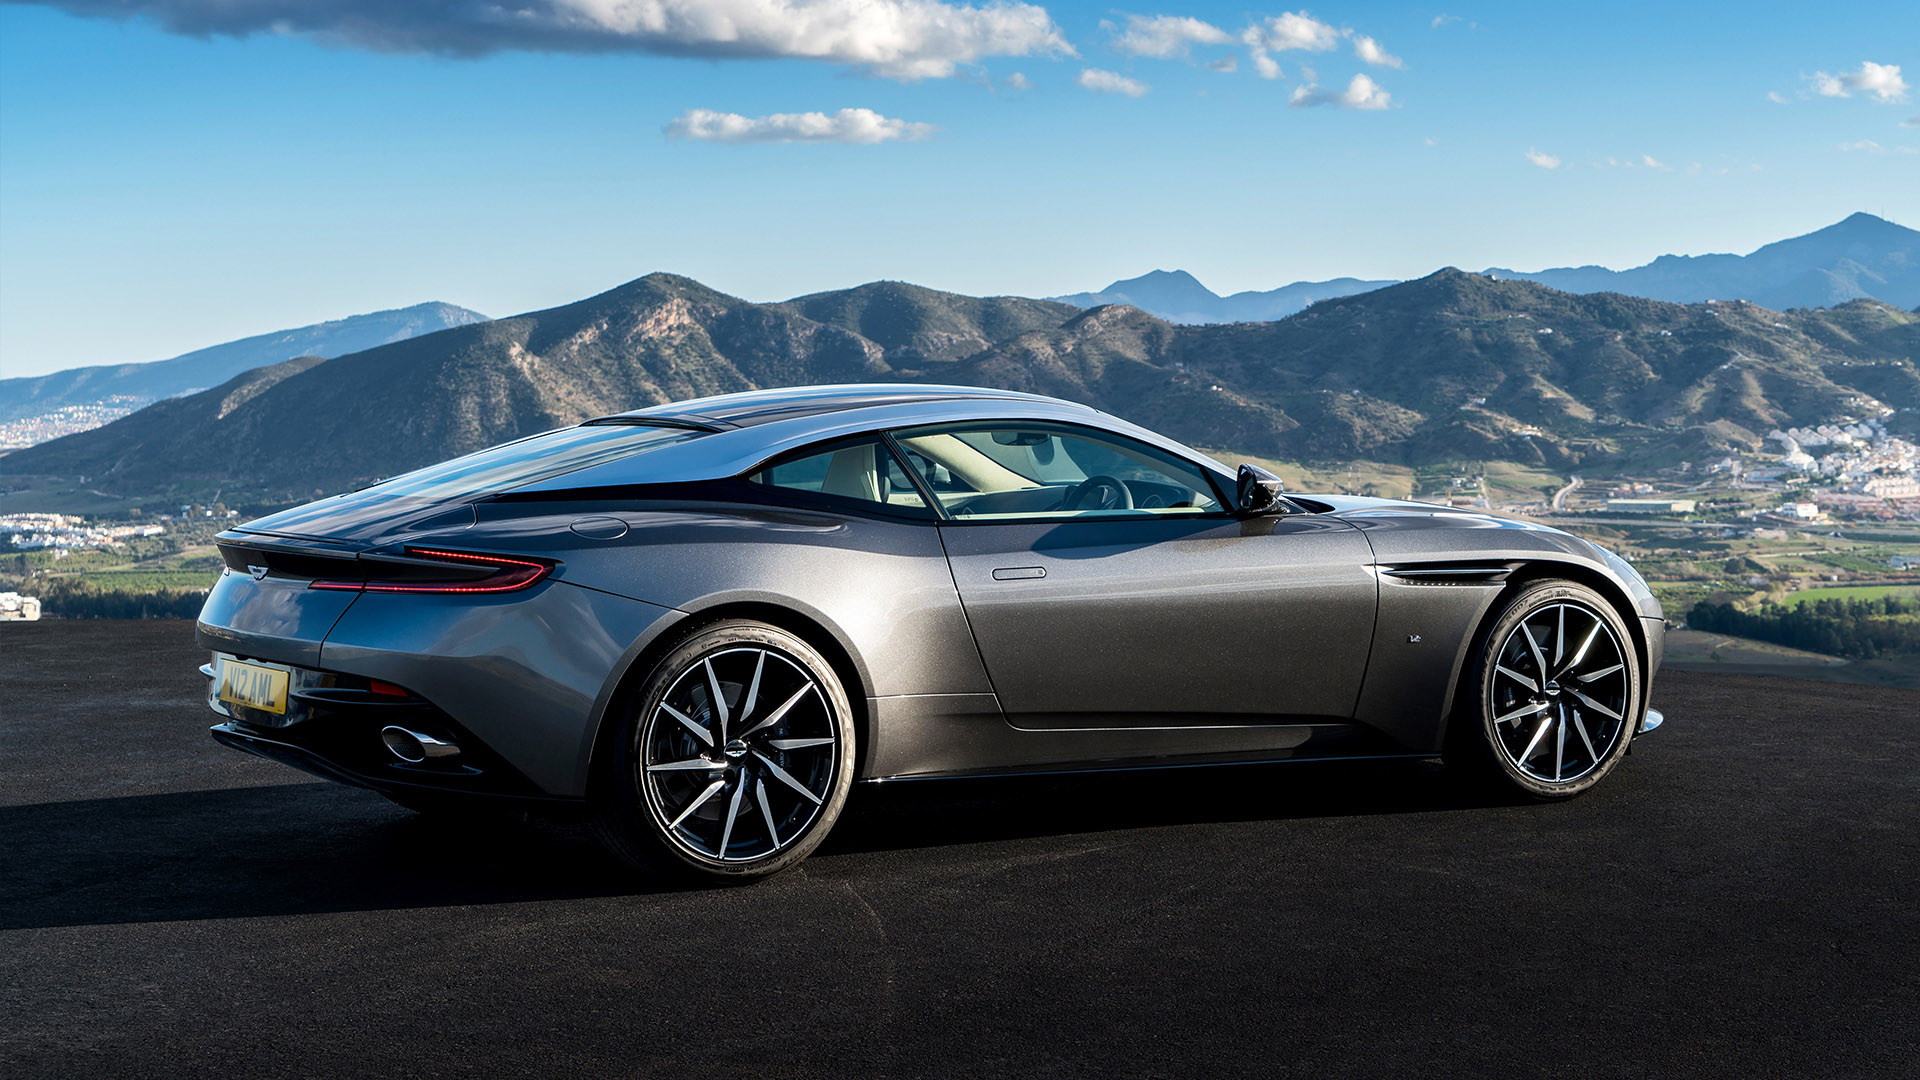 10 Things You Didn't Know About Aston Martin | Featured Image